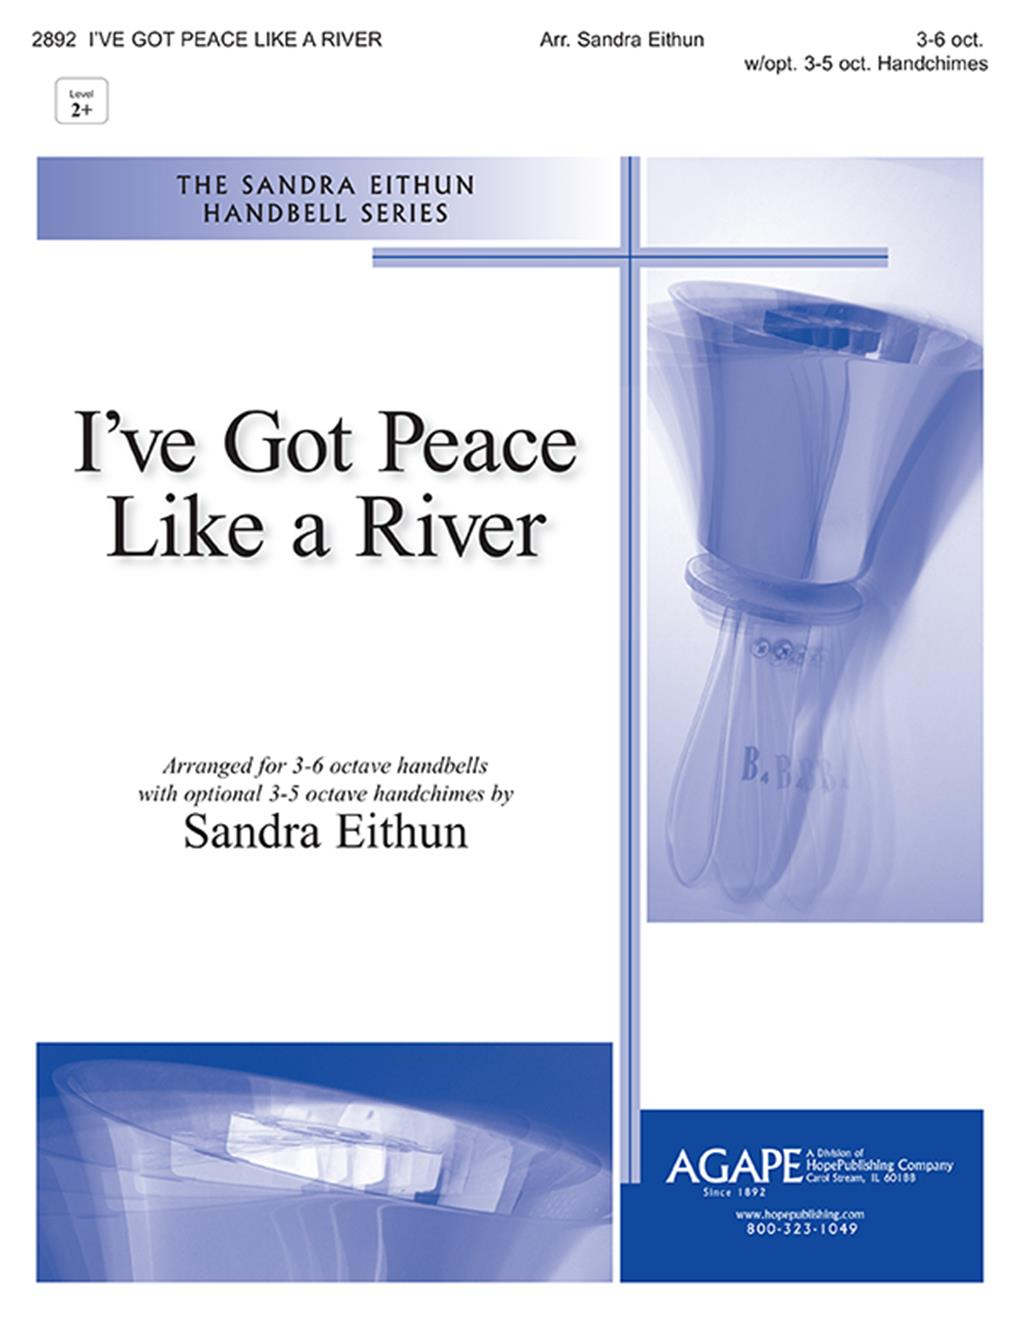 I've Got Peace Like A River - 3-6 Oct. Cover Image